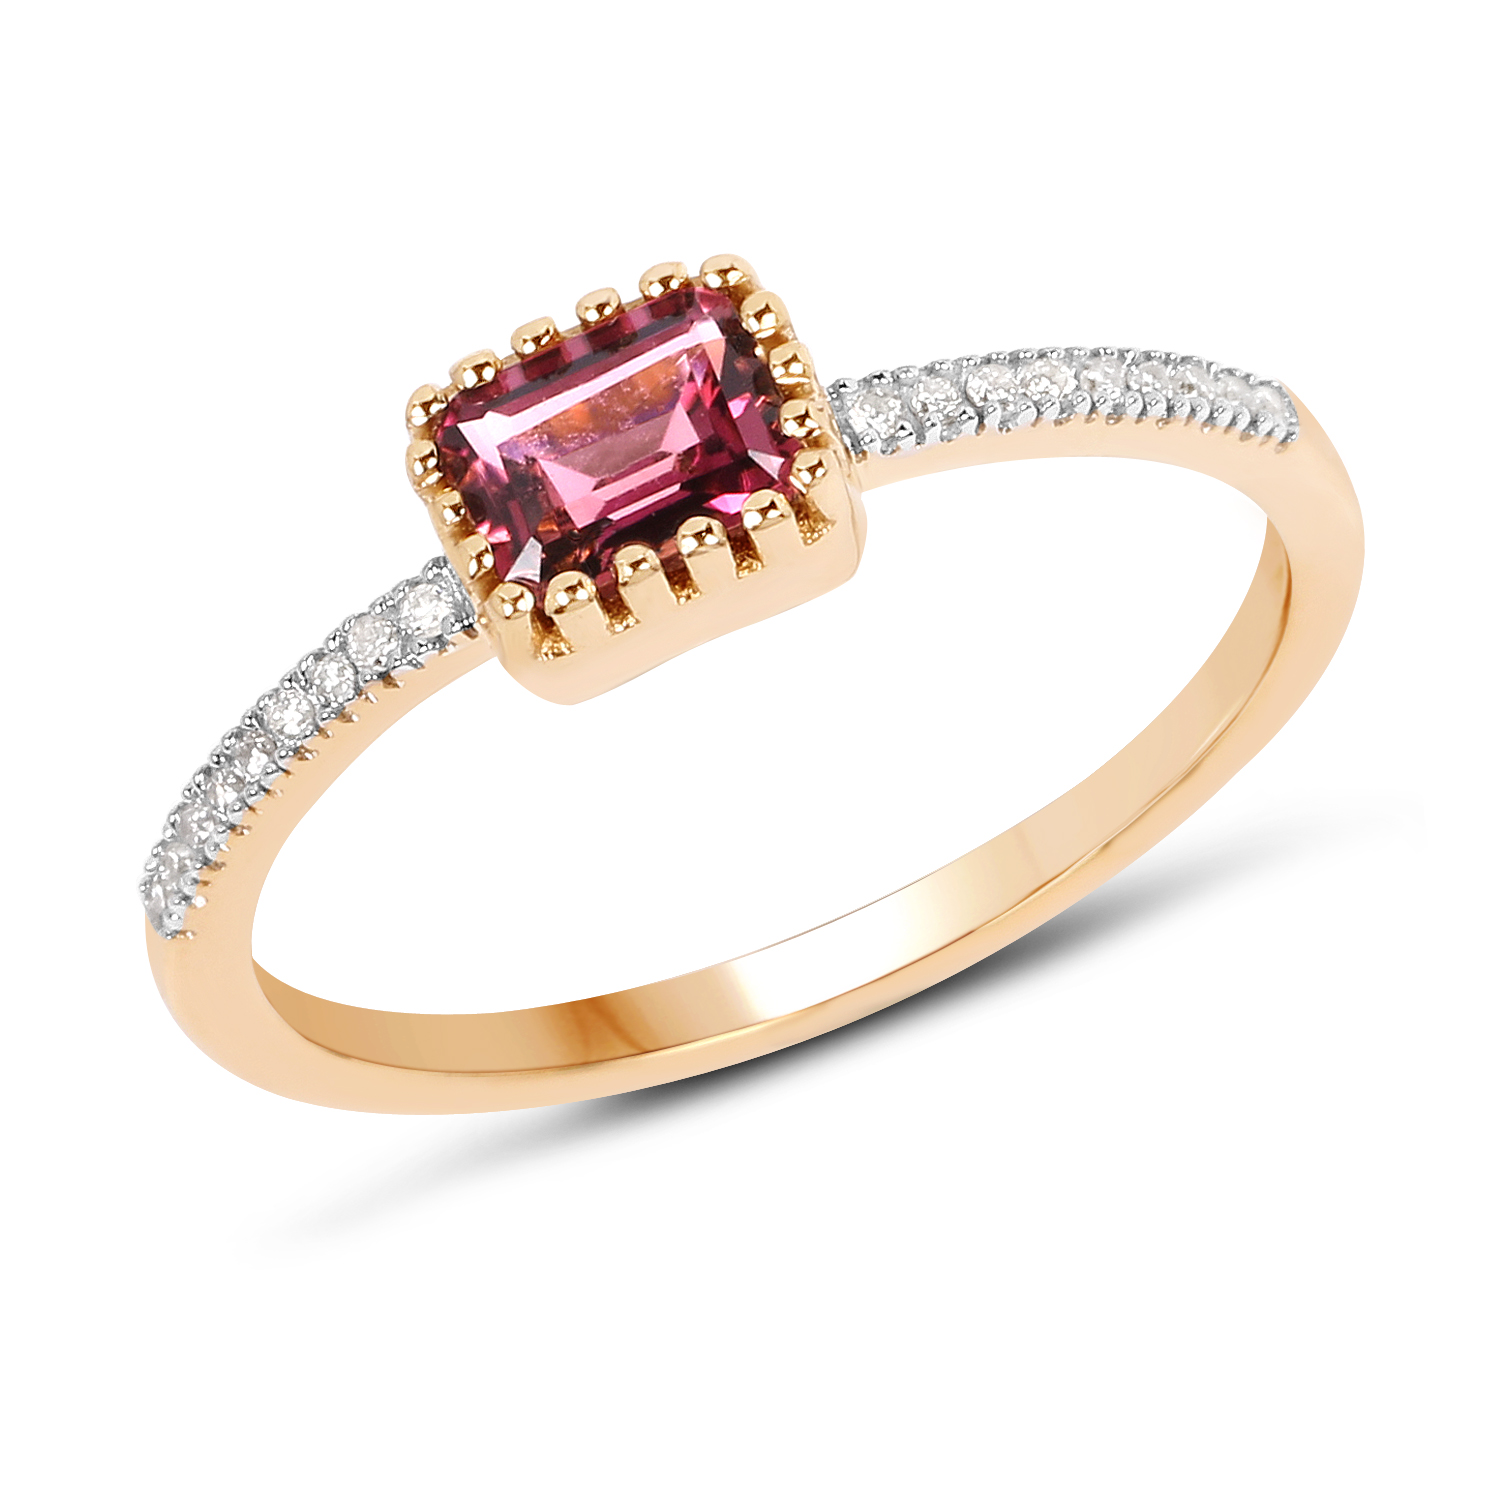 0.65 ct. Genuine Pink Tourmaline and White Diamond 14K Yellow Gold Ring by DAZYLE